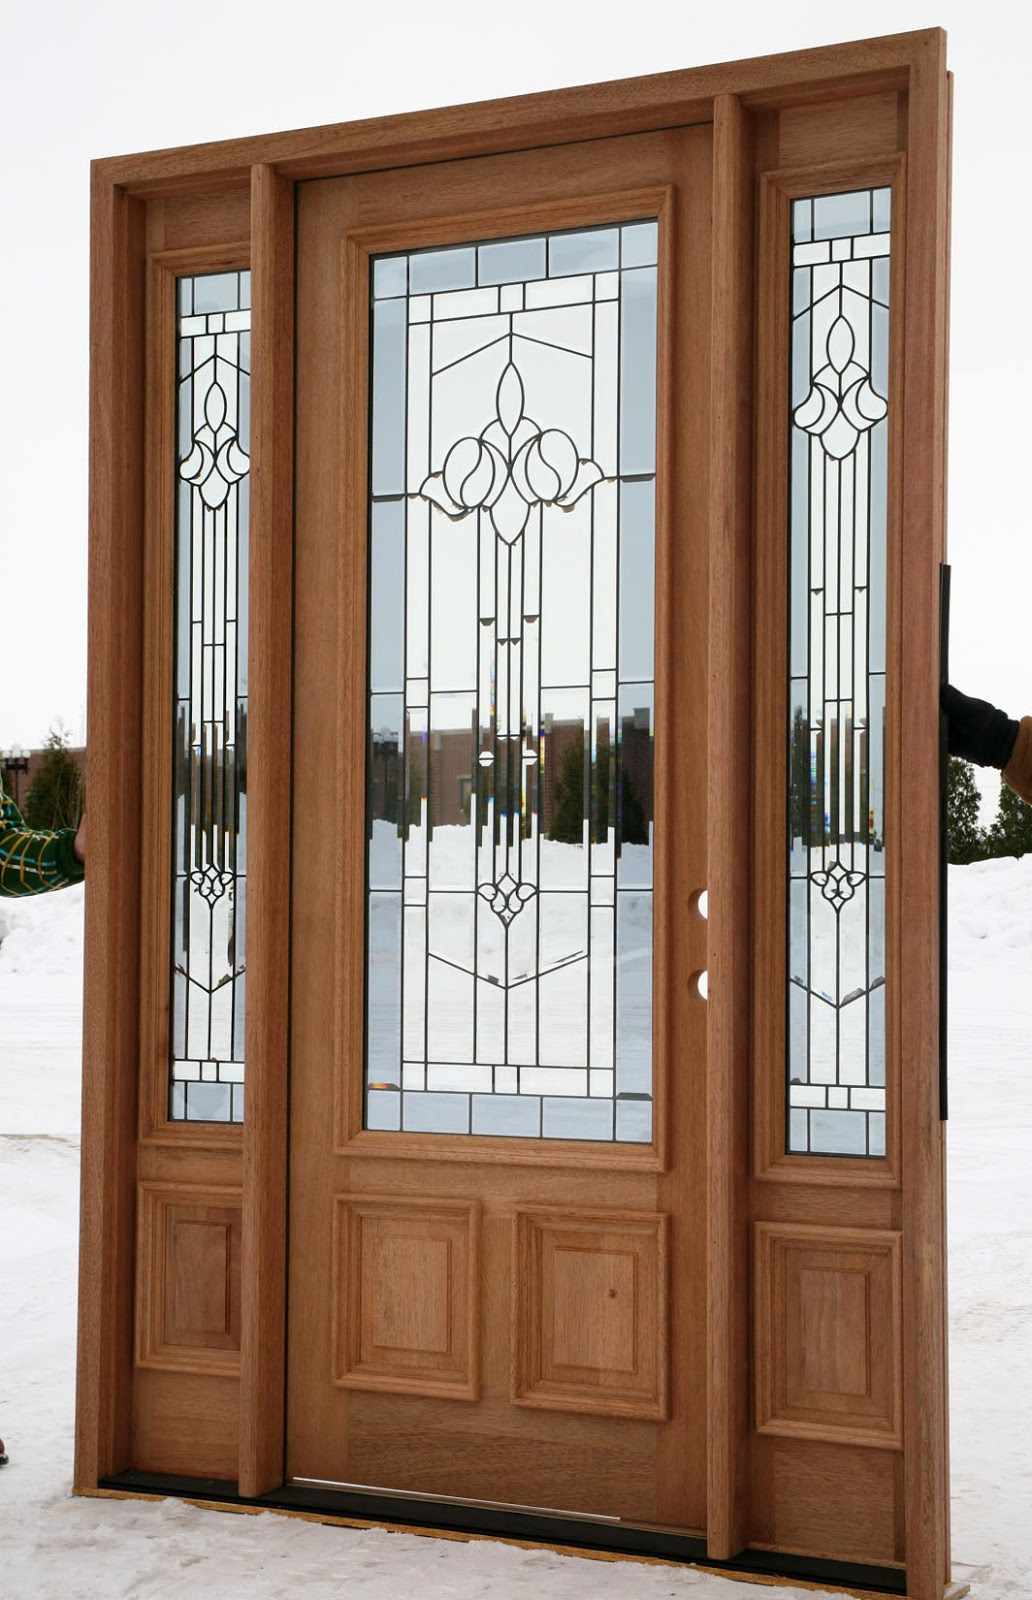 1600 #724529 Front Entry Doors With Sidelights Ideas ~ Instant Knowledge picture/photo Entry Doors With Sidelights 41991032